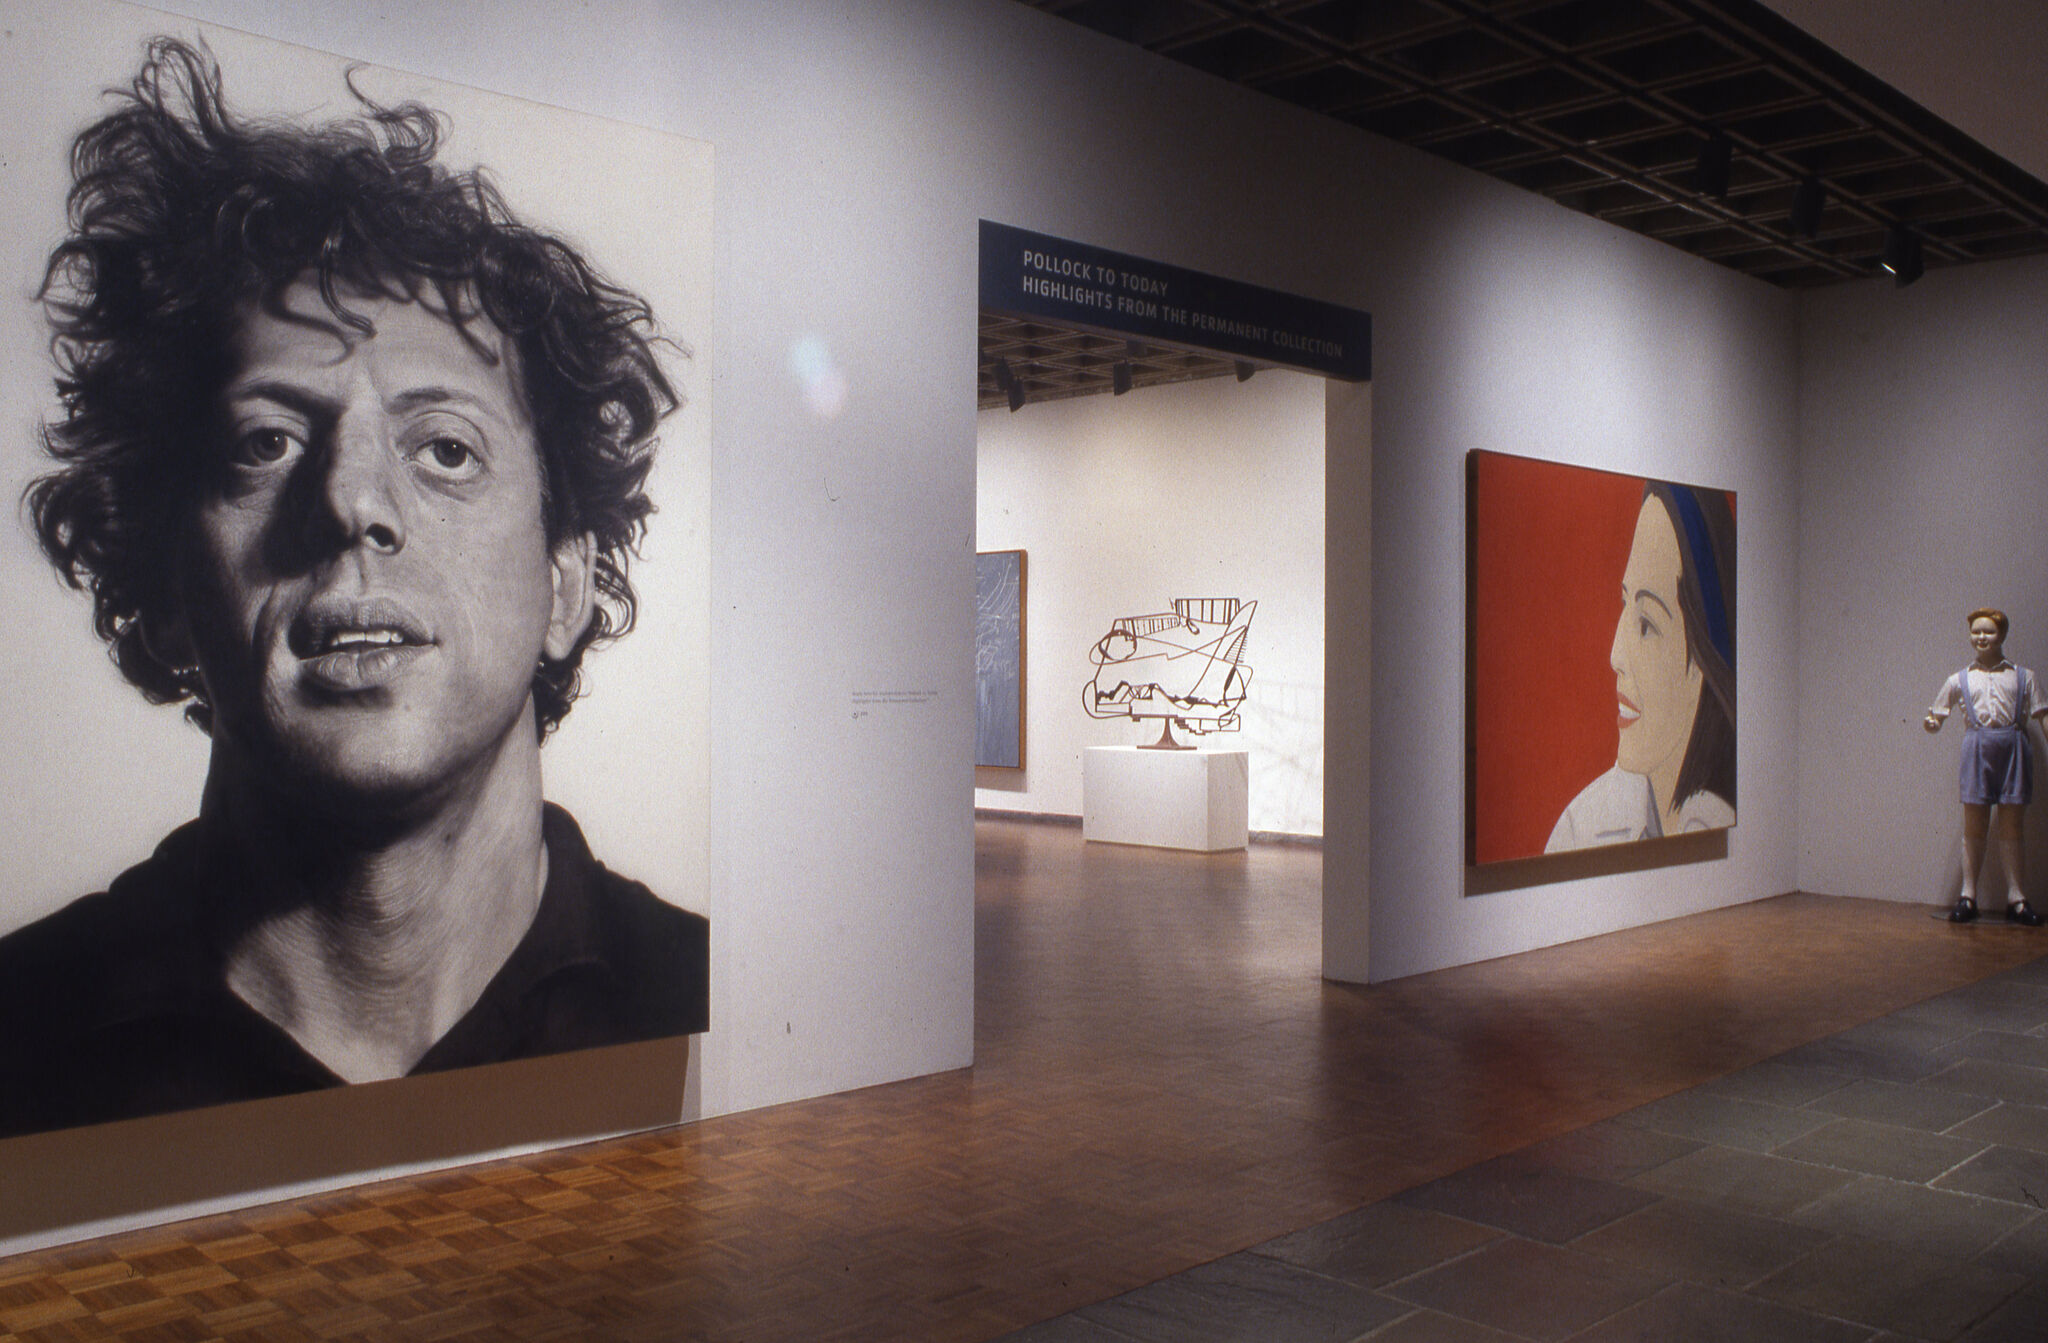 Works of art depicting faces displayed at the entrance of Pollock to Today: Highlights from the Permanent Collection.